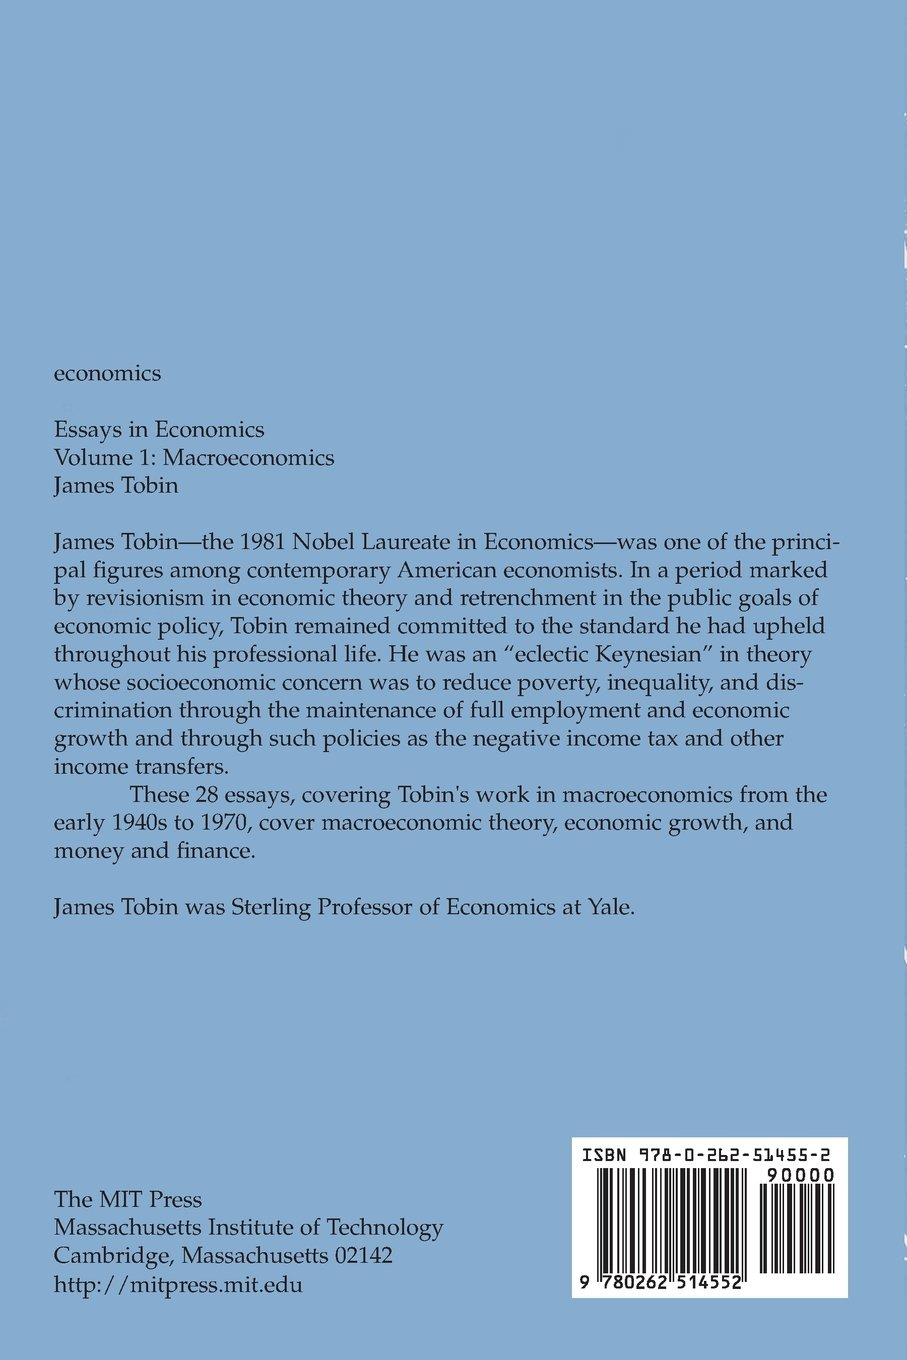 essays economics james tobin  essays economics james tobin